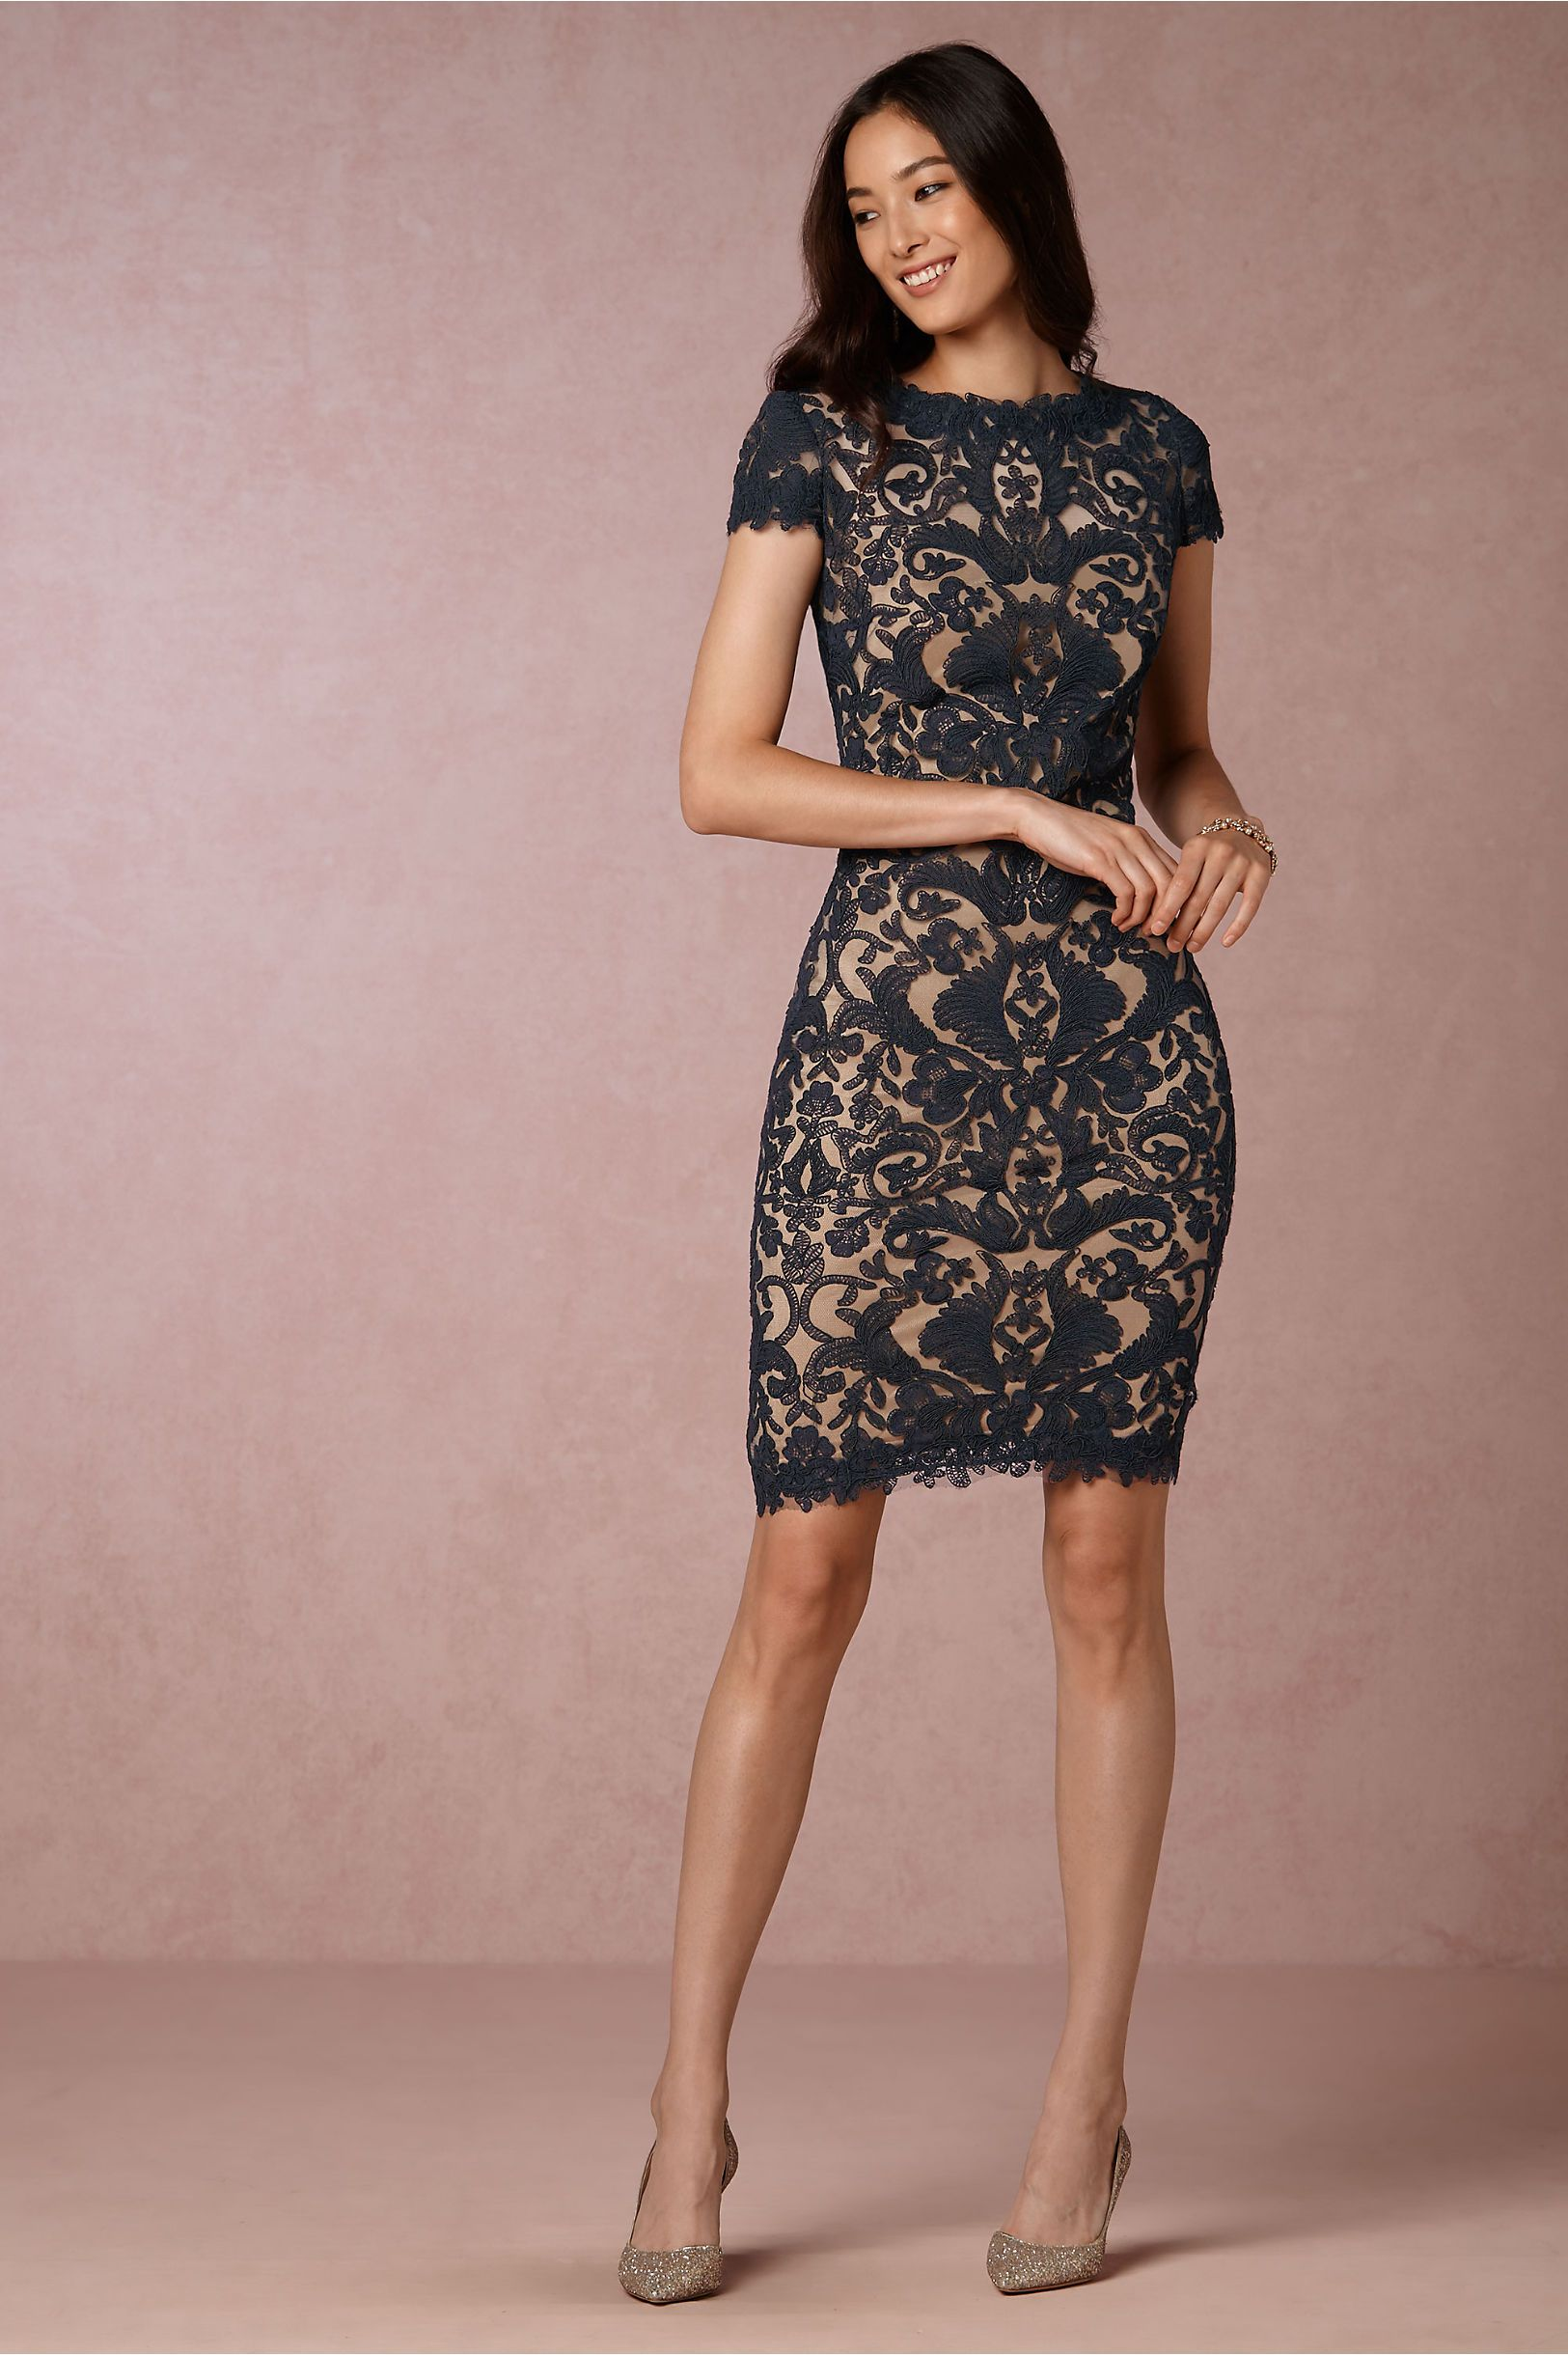 s7d1.scene7.com is image BHLDN 40125205_041_a?$zoom-xl ...